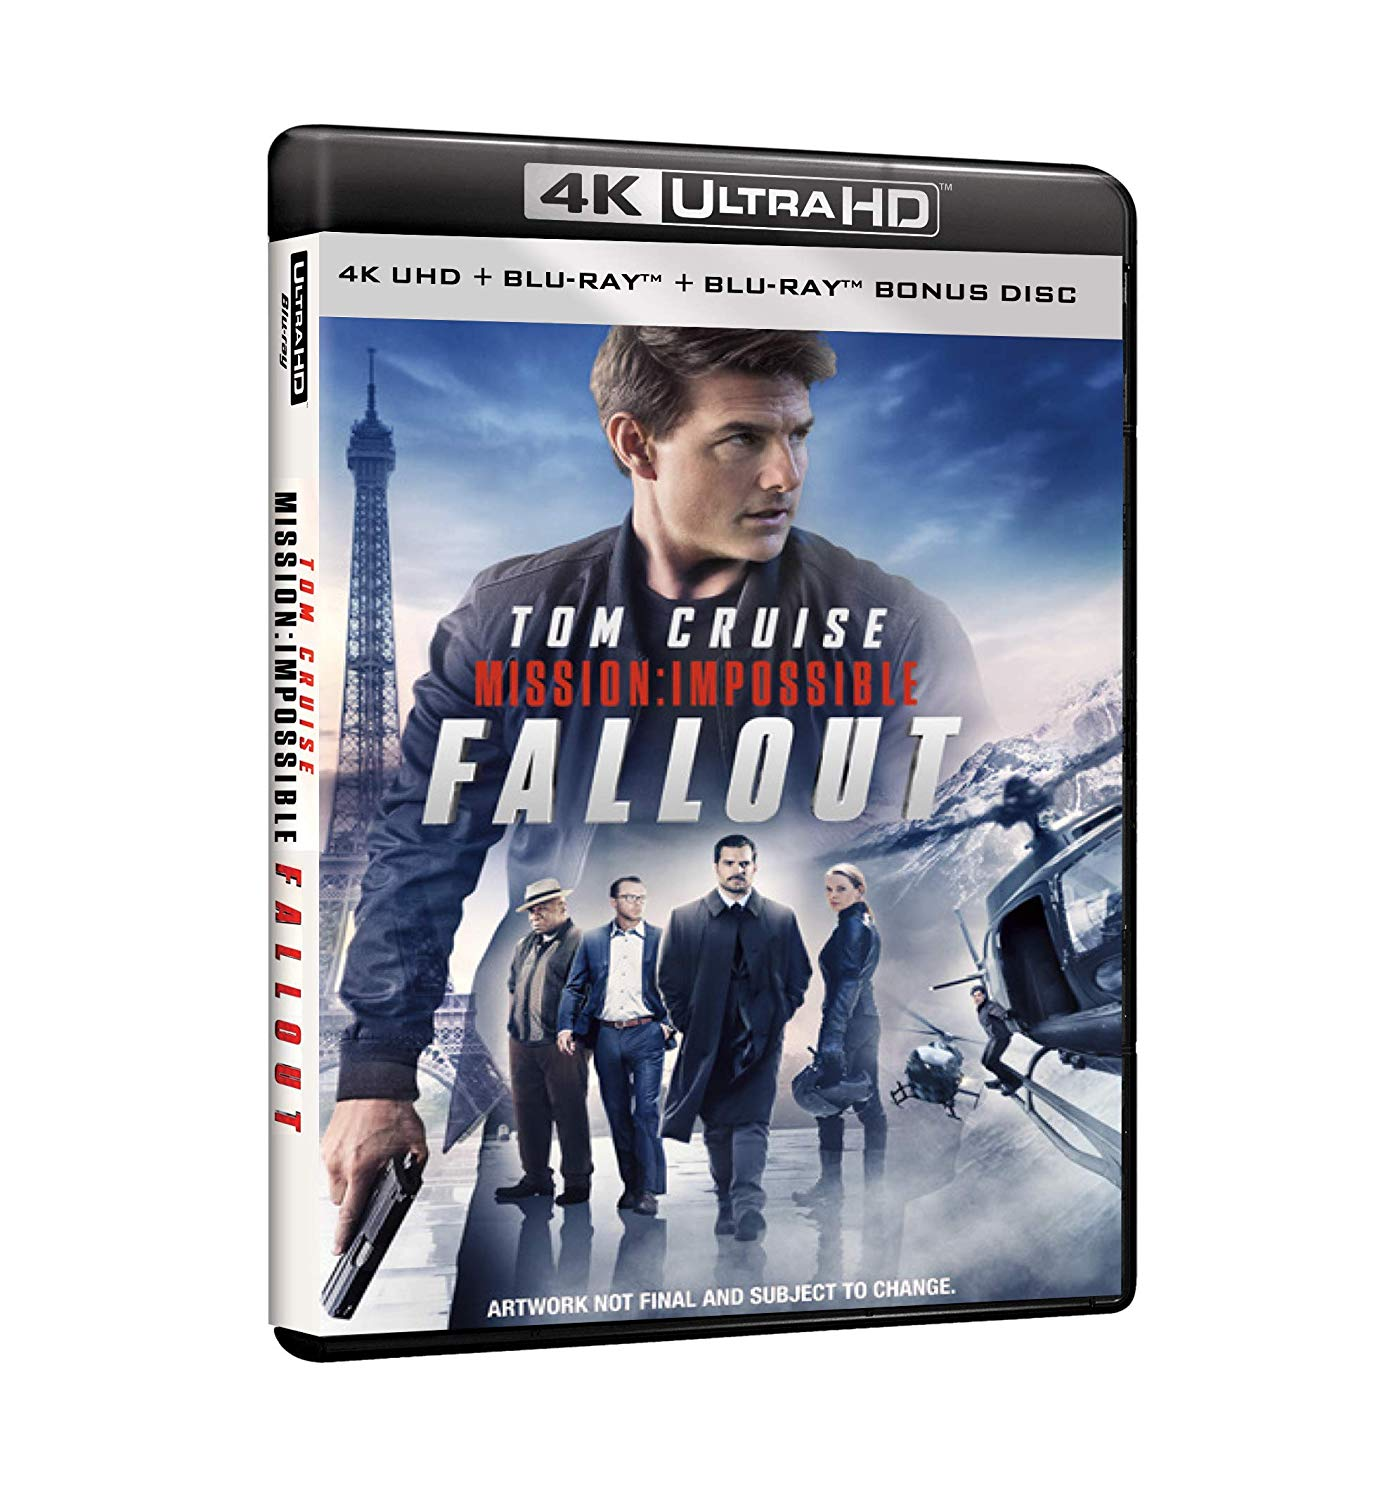 MISSION: IMPOSSIBLE - FALLOUT (BLU-RAY 4K ULTRA HD+BLU-RAY)